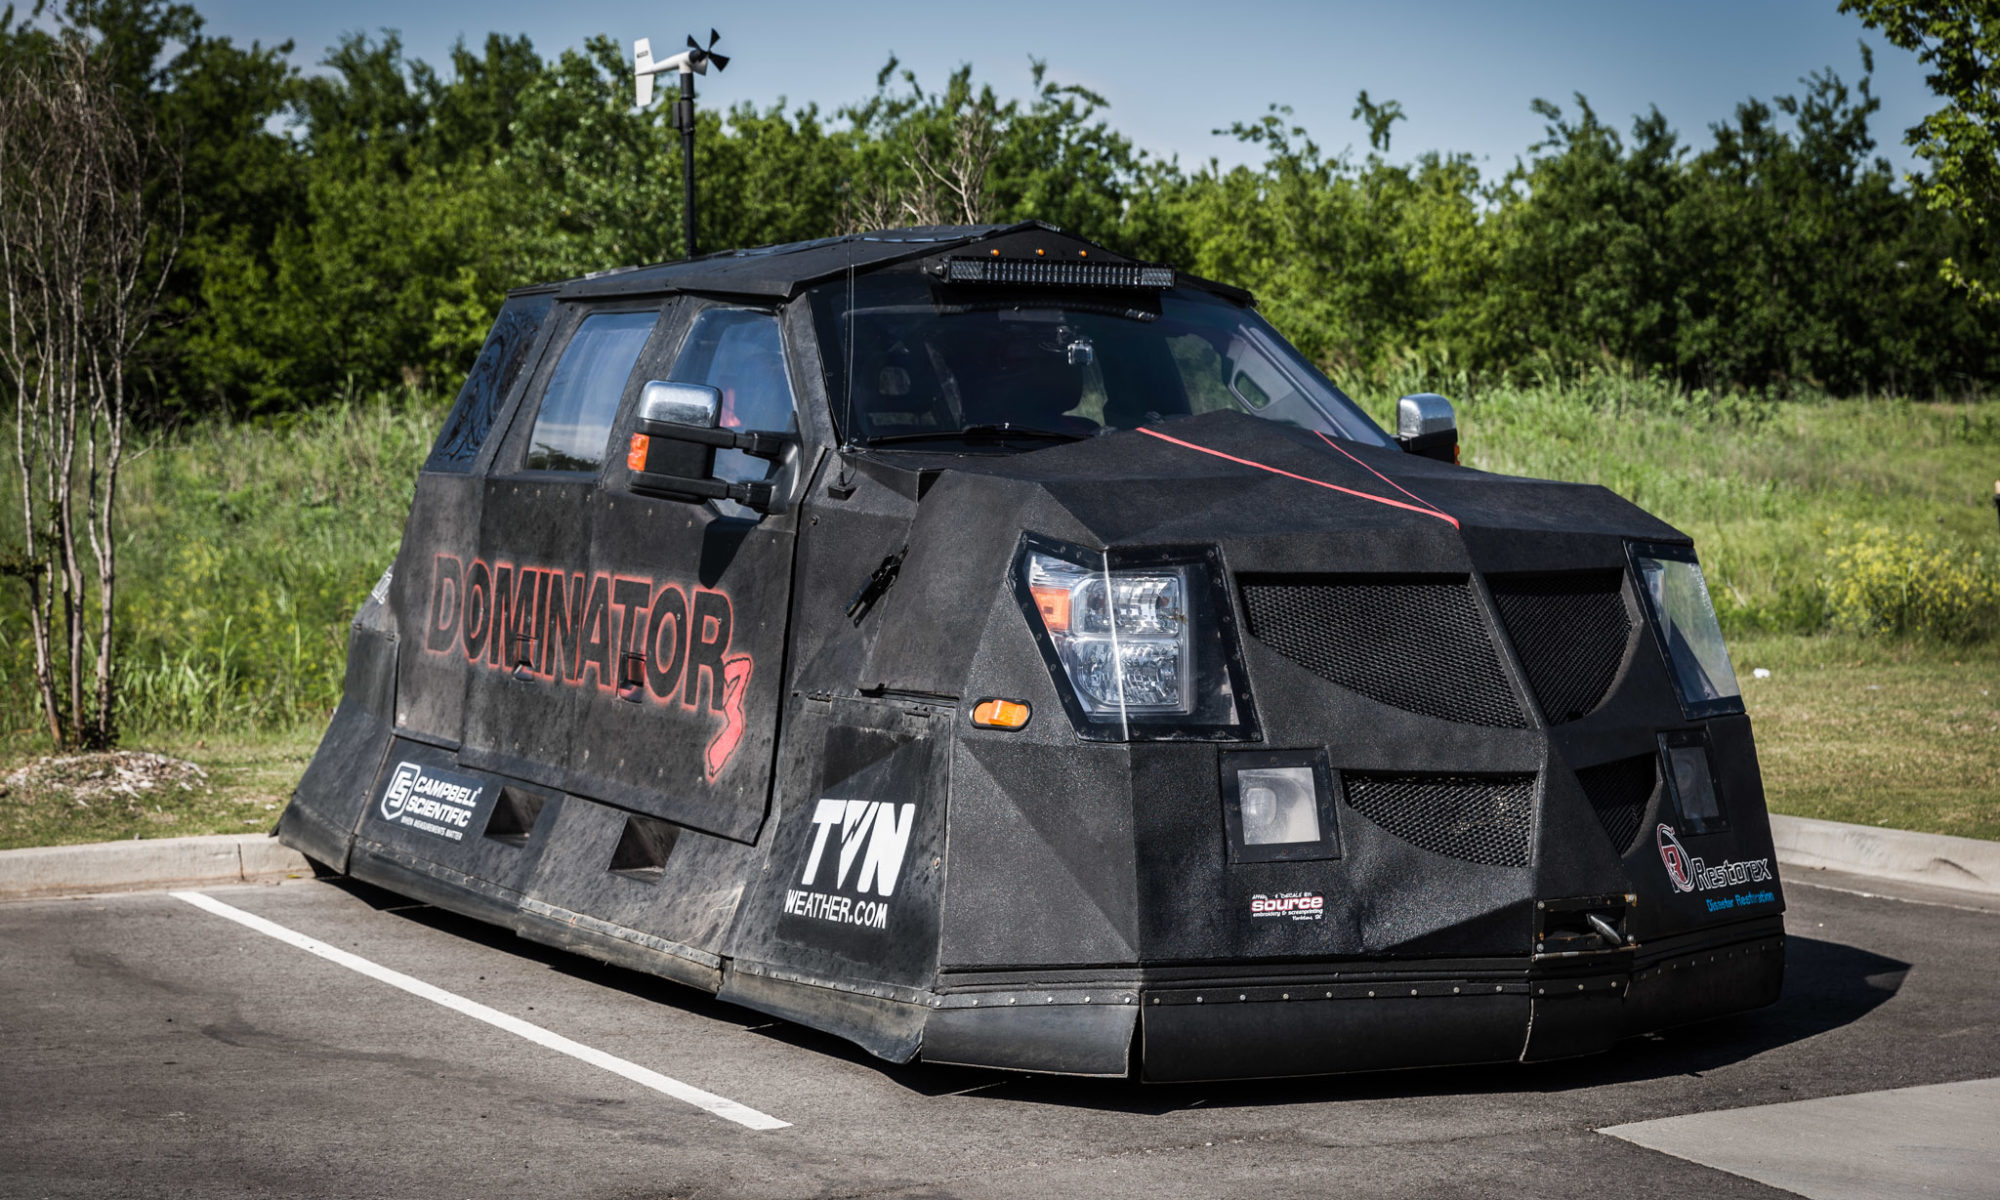 Dominator 3 vehicle - Oklahoma - © TsWISsTER